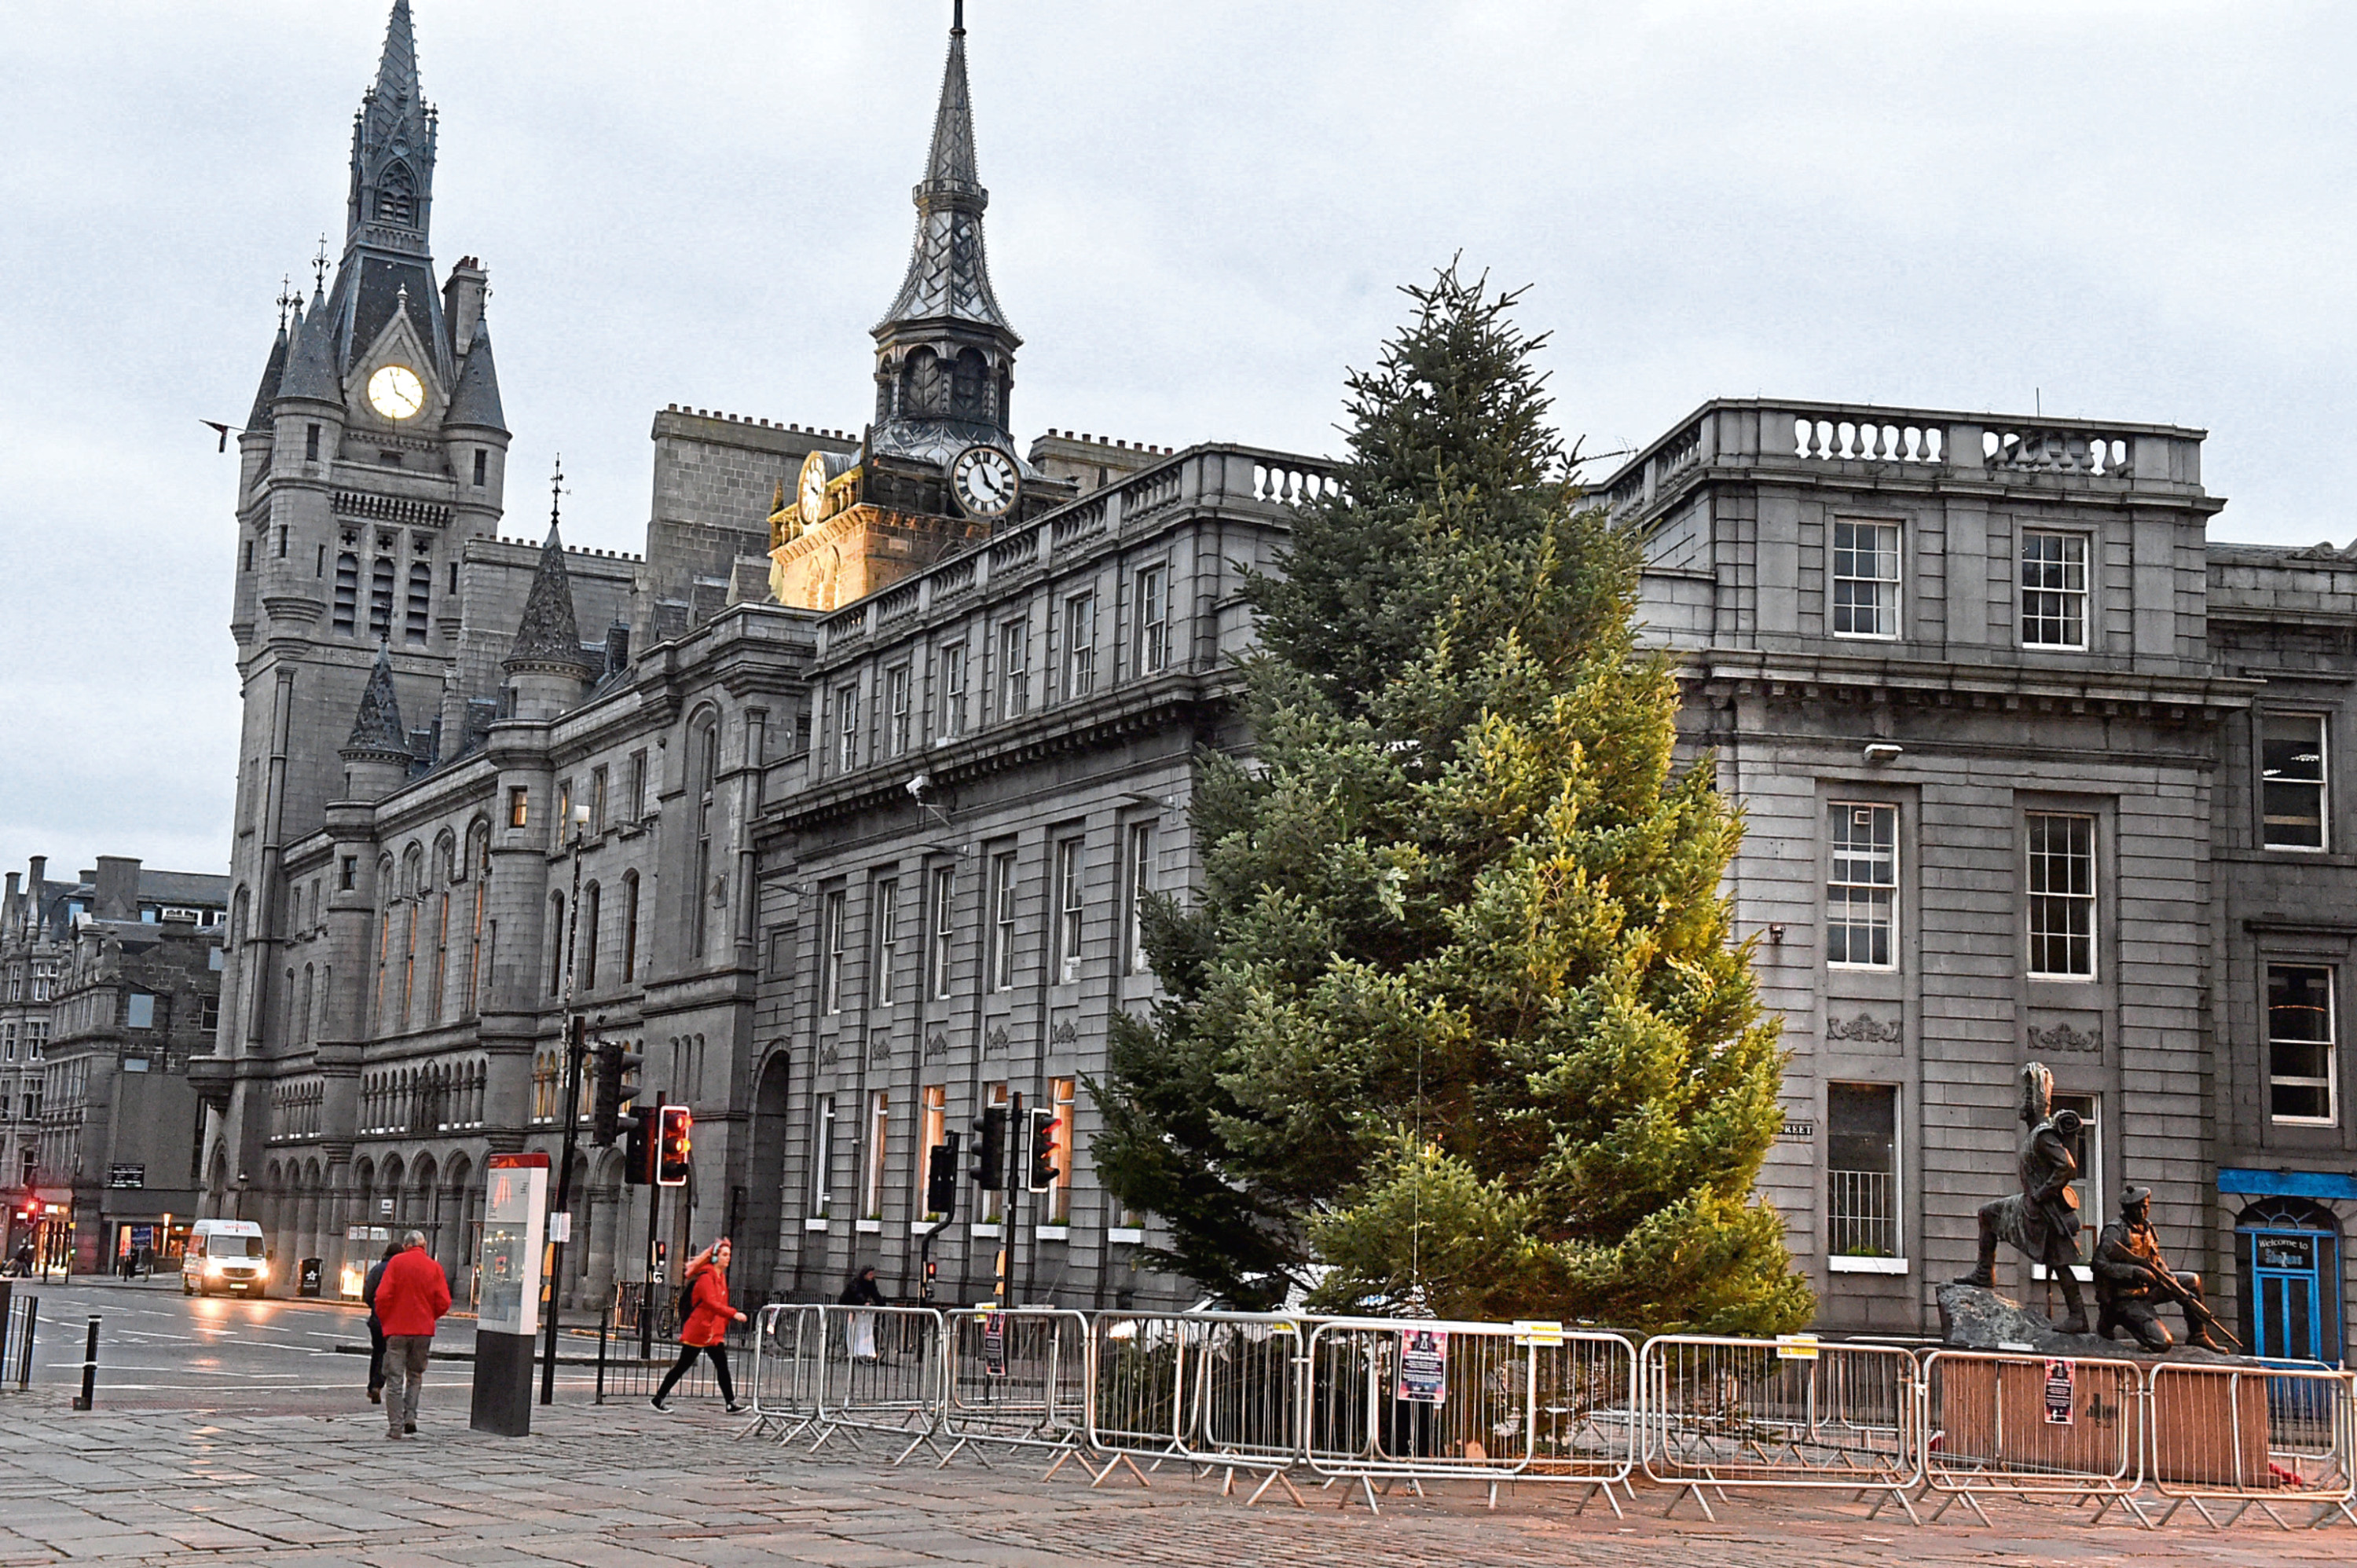 Aberdeen's Christmas tree at the Castlegate